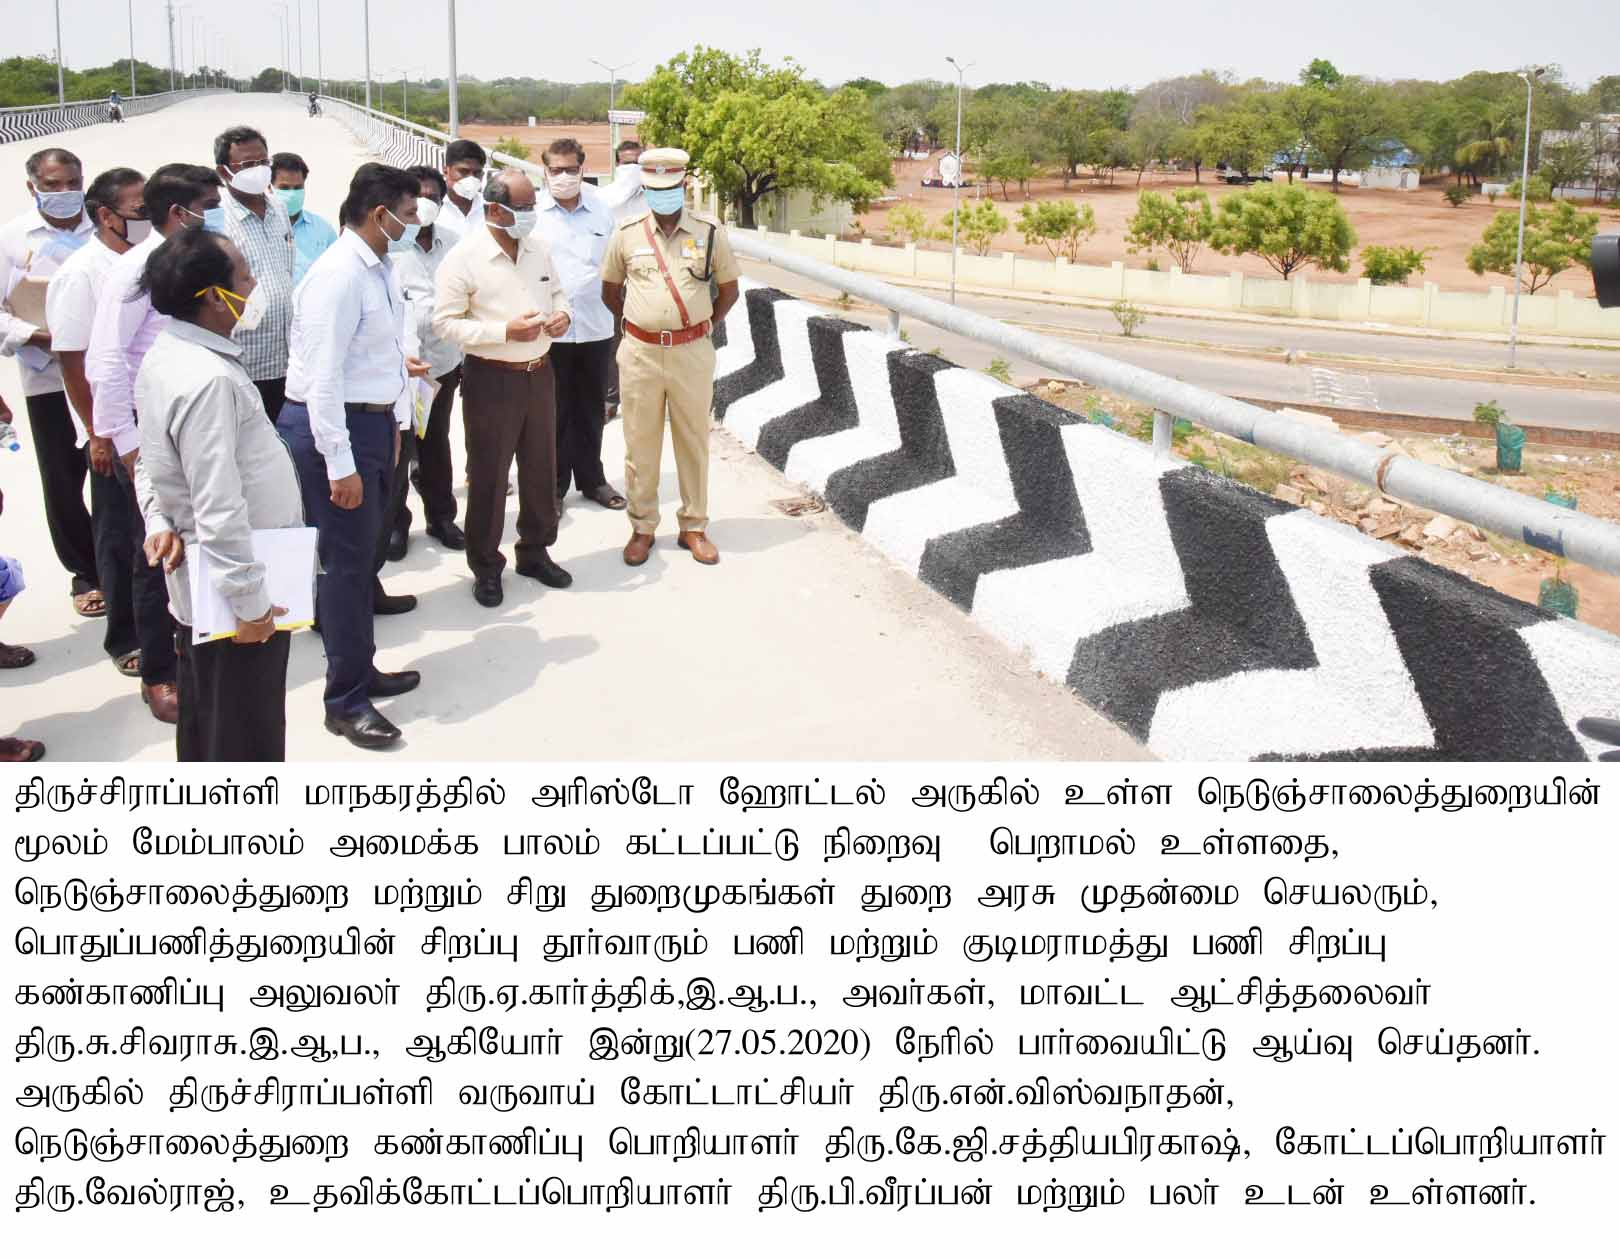 Principal Secretary to Govt. and Special Officer for Kudimaramathu Inspected the Over bridge Project on 27-05-2020